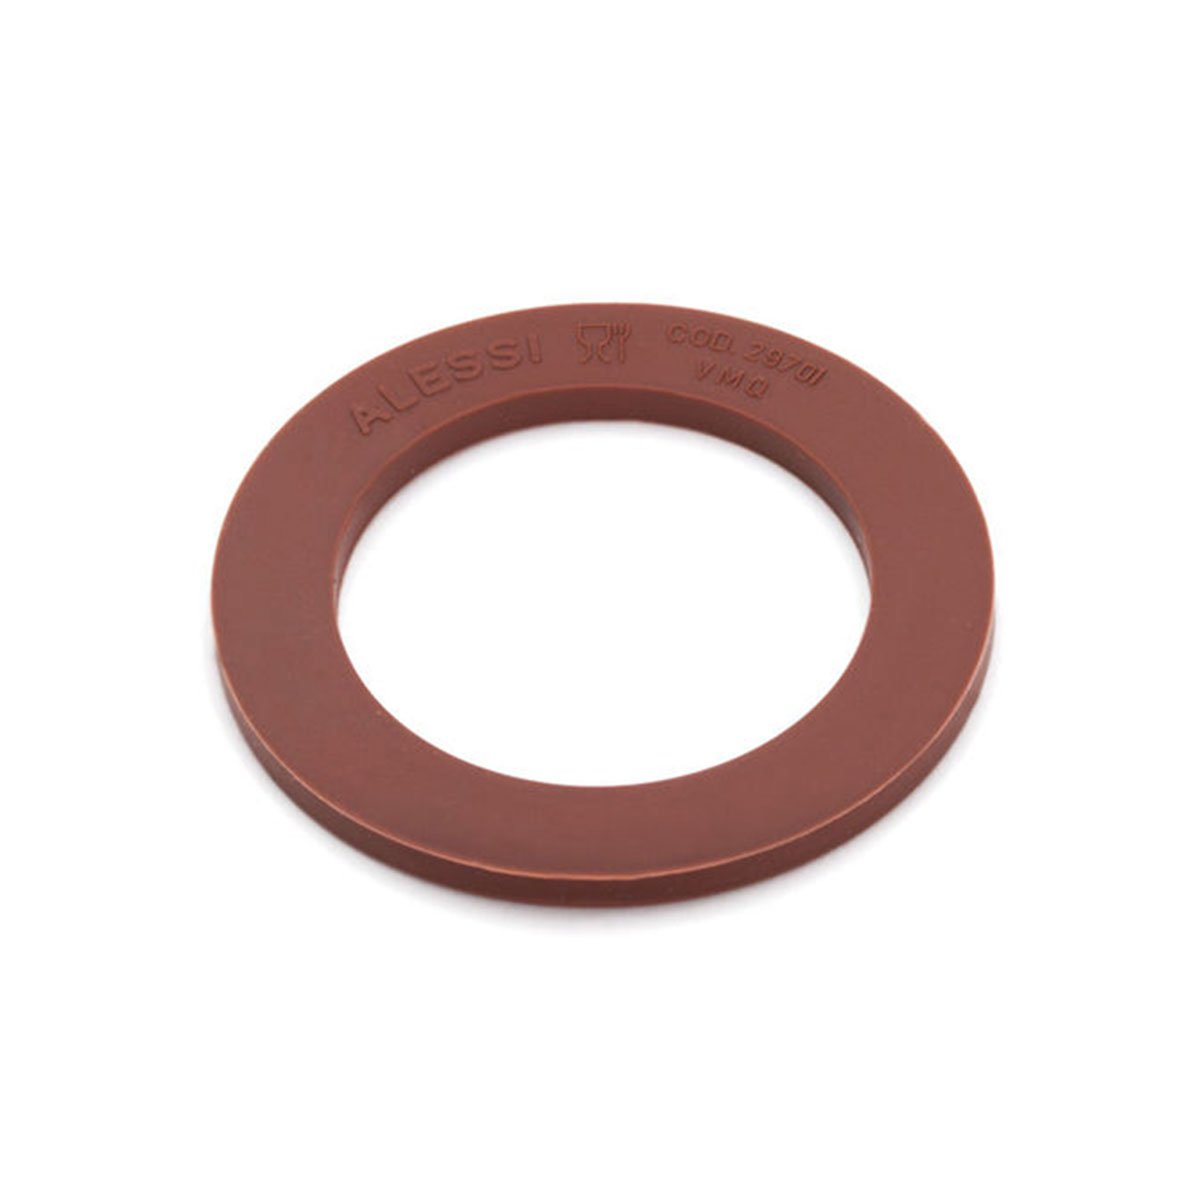 Replacement Washer for 90002//6 La Conica 6-cup Espresso Pot by Alessi